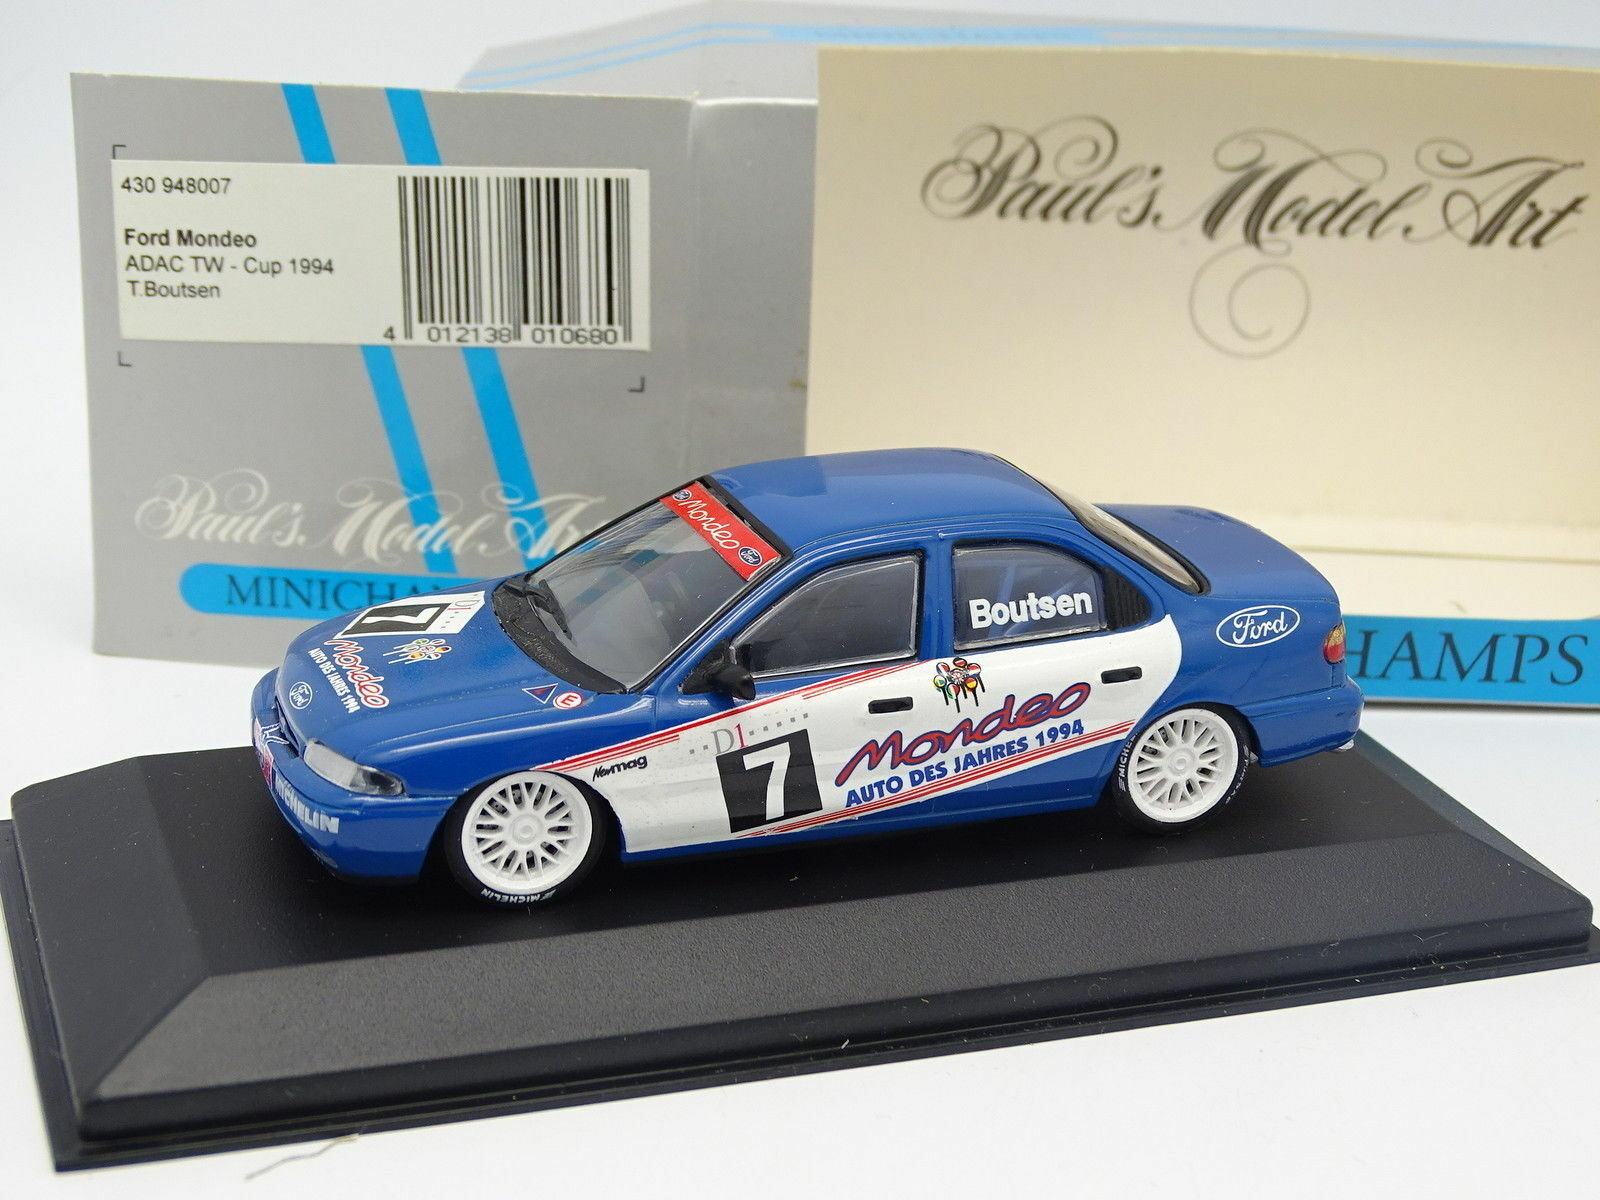 Minichamps 1 43 - Ford Mondeo ADAC TW Cup 1994 Boutsen